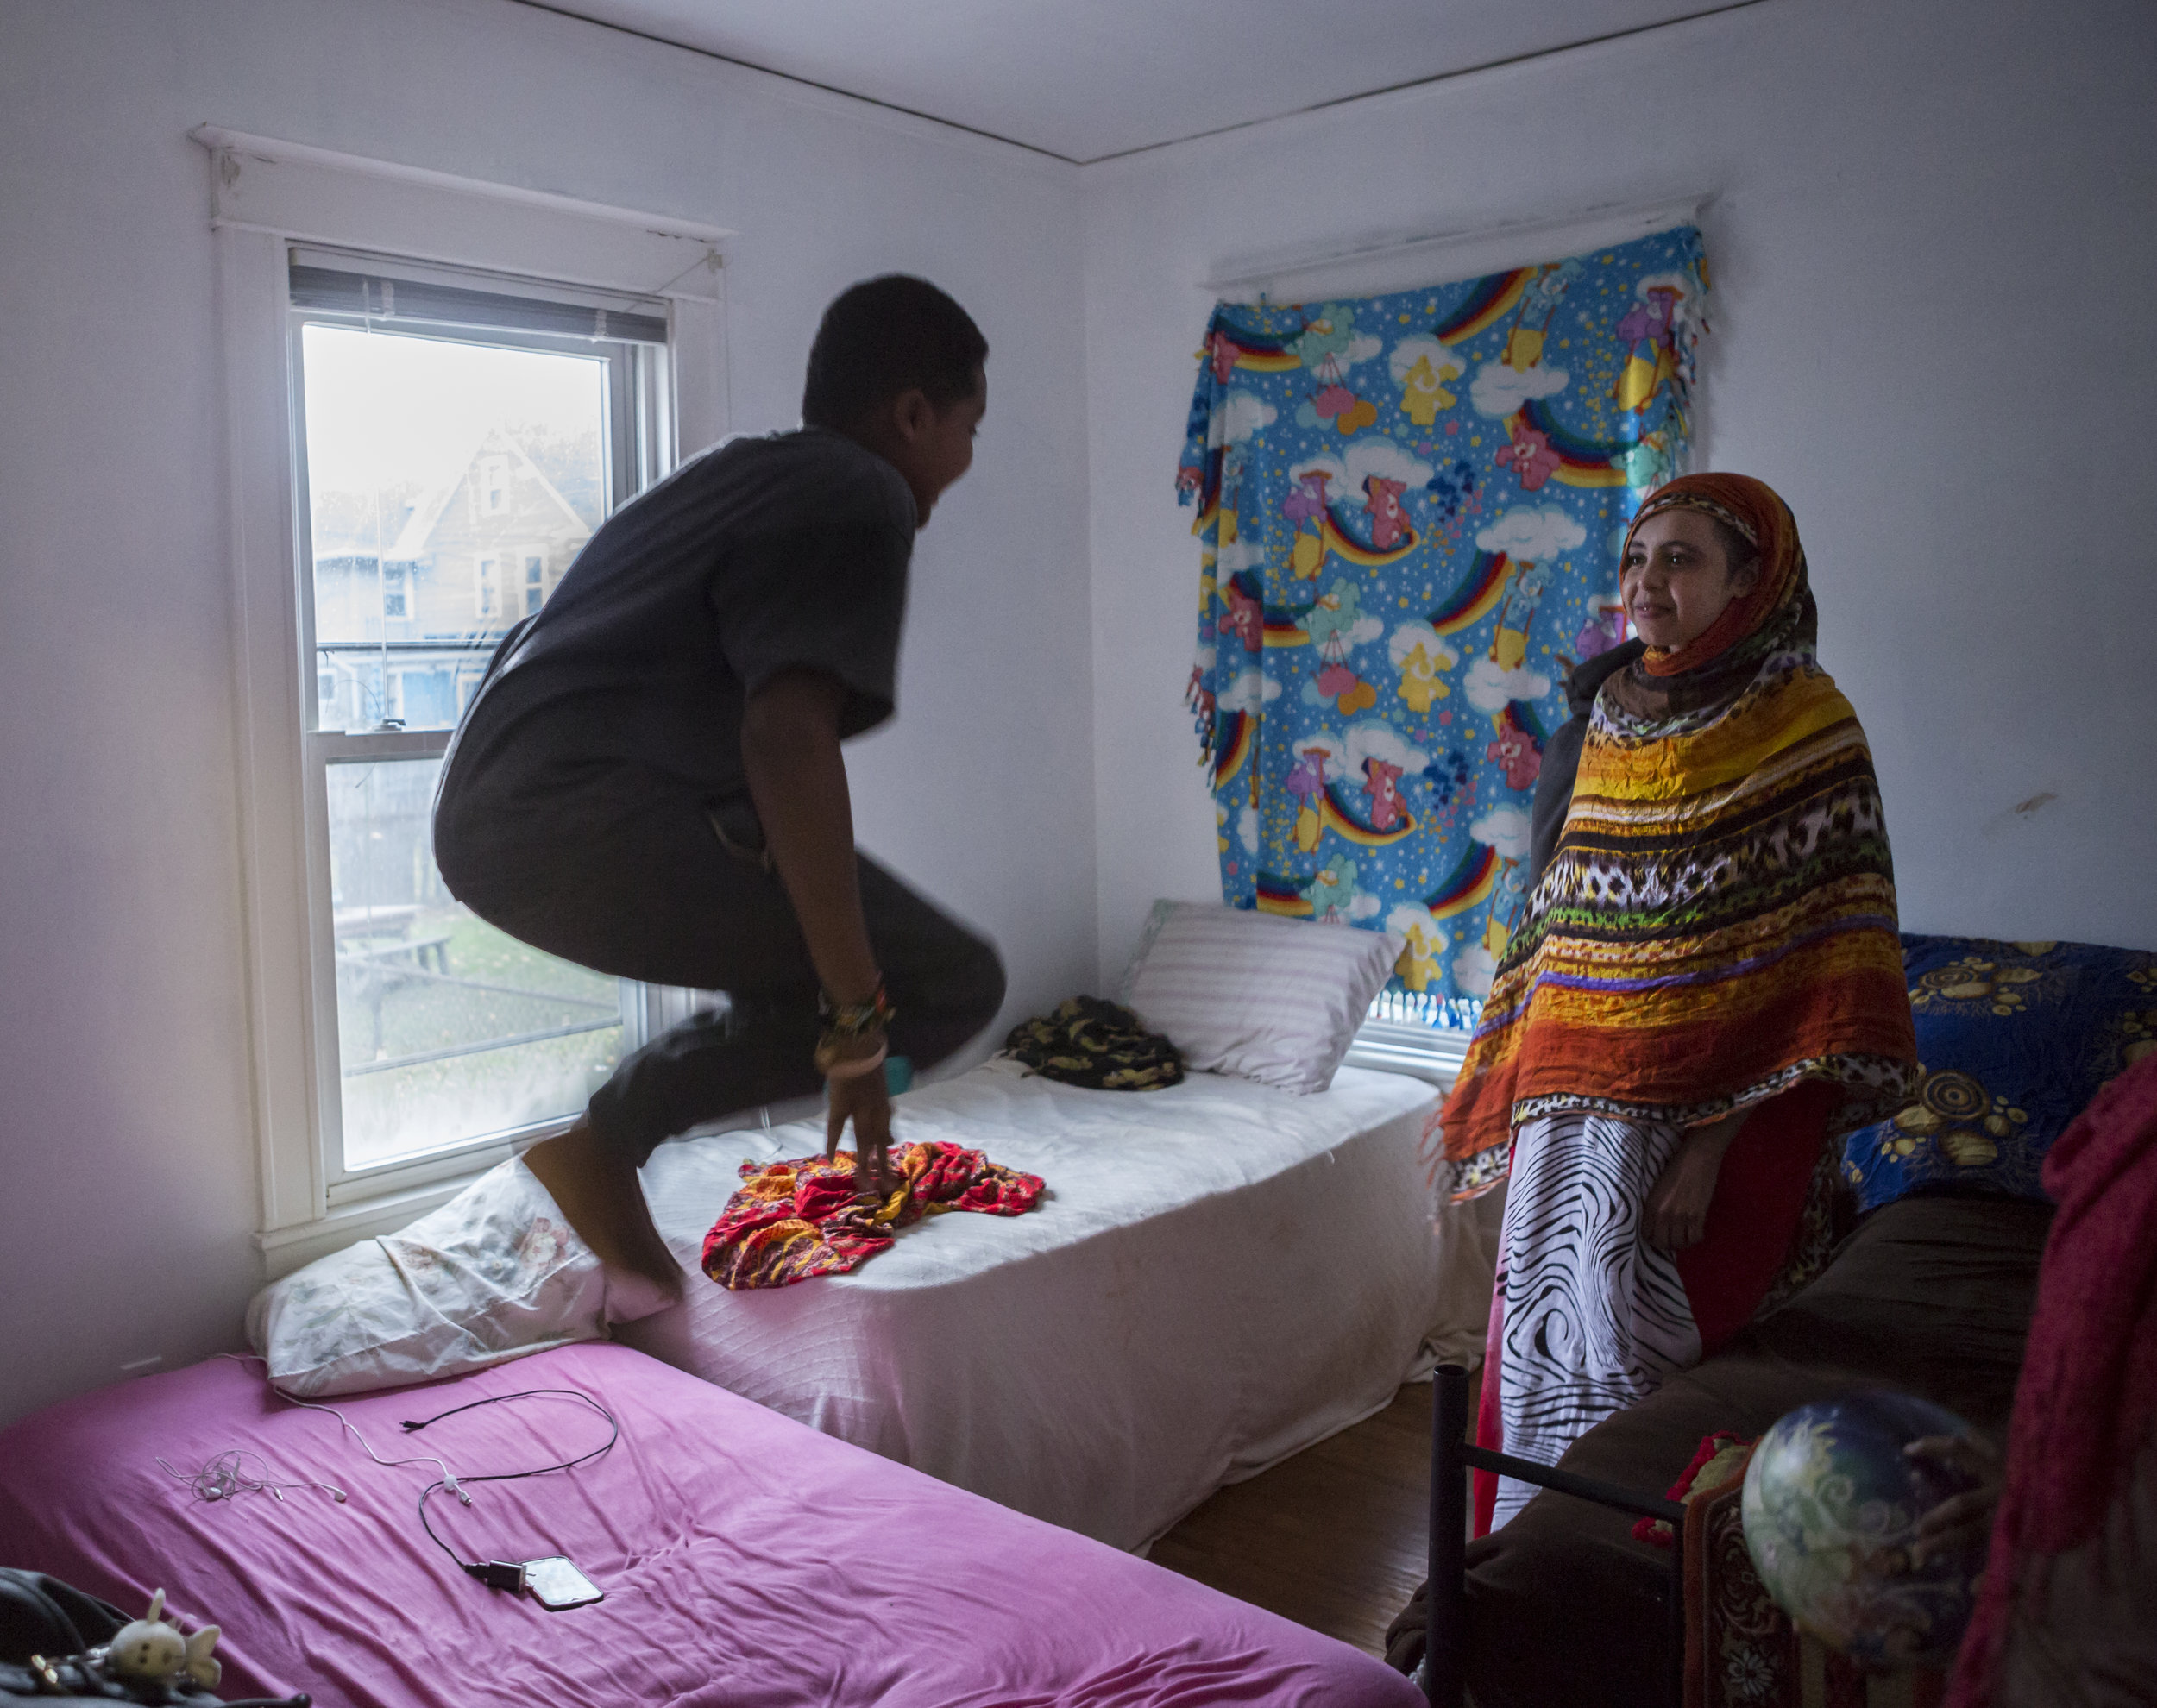 Abdullahi jumps on one of his nine sister's beds as his elder sister Rodha, nicknamed Haifa, looks on. This bedroom is shared by 3 sisters. Dec 1, 2016